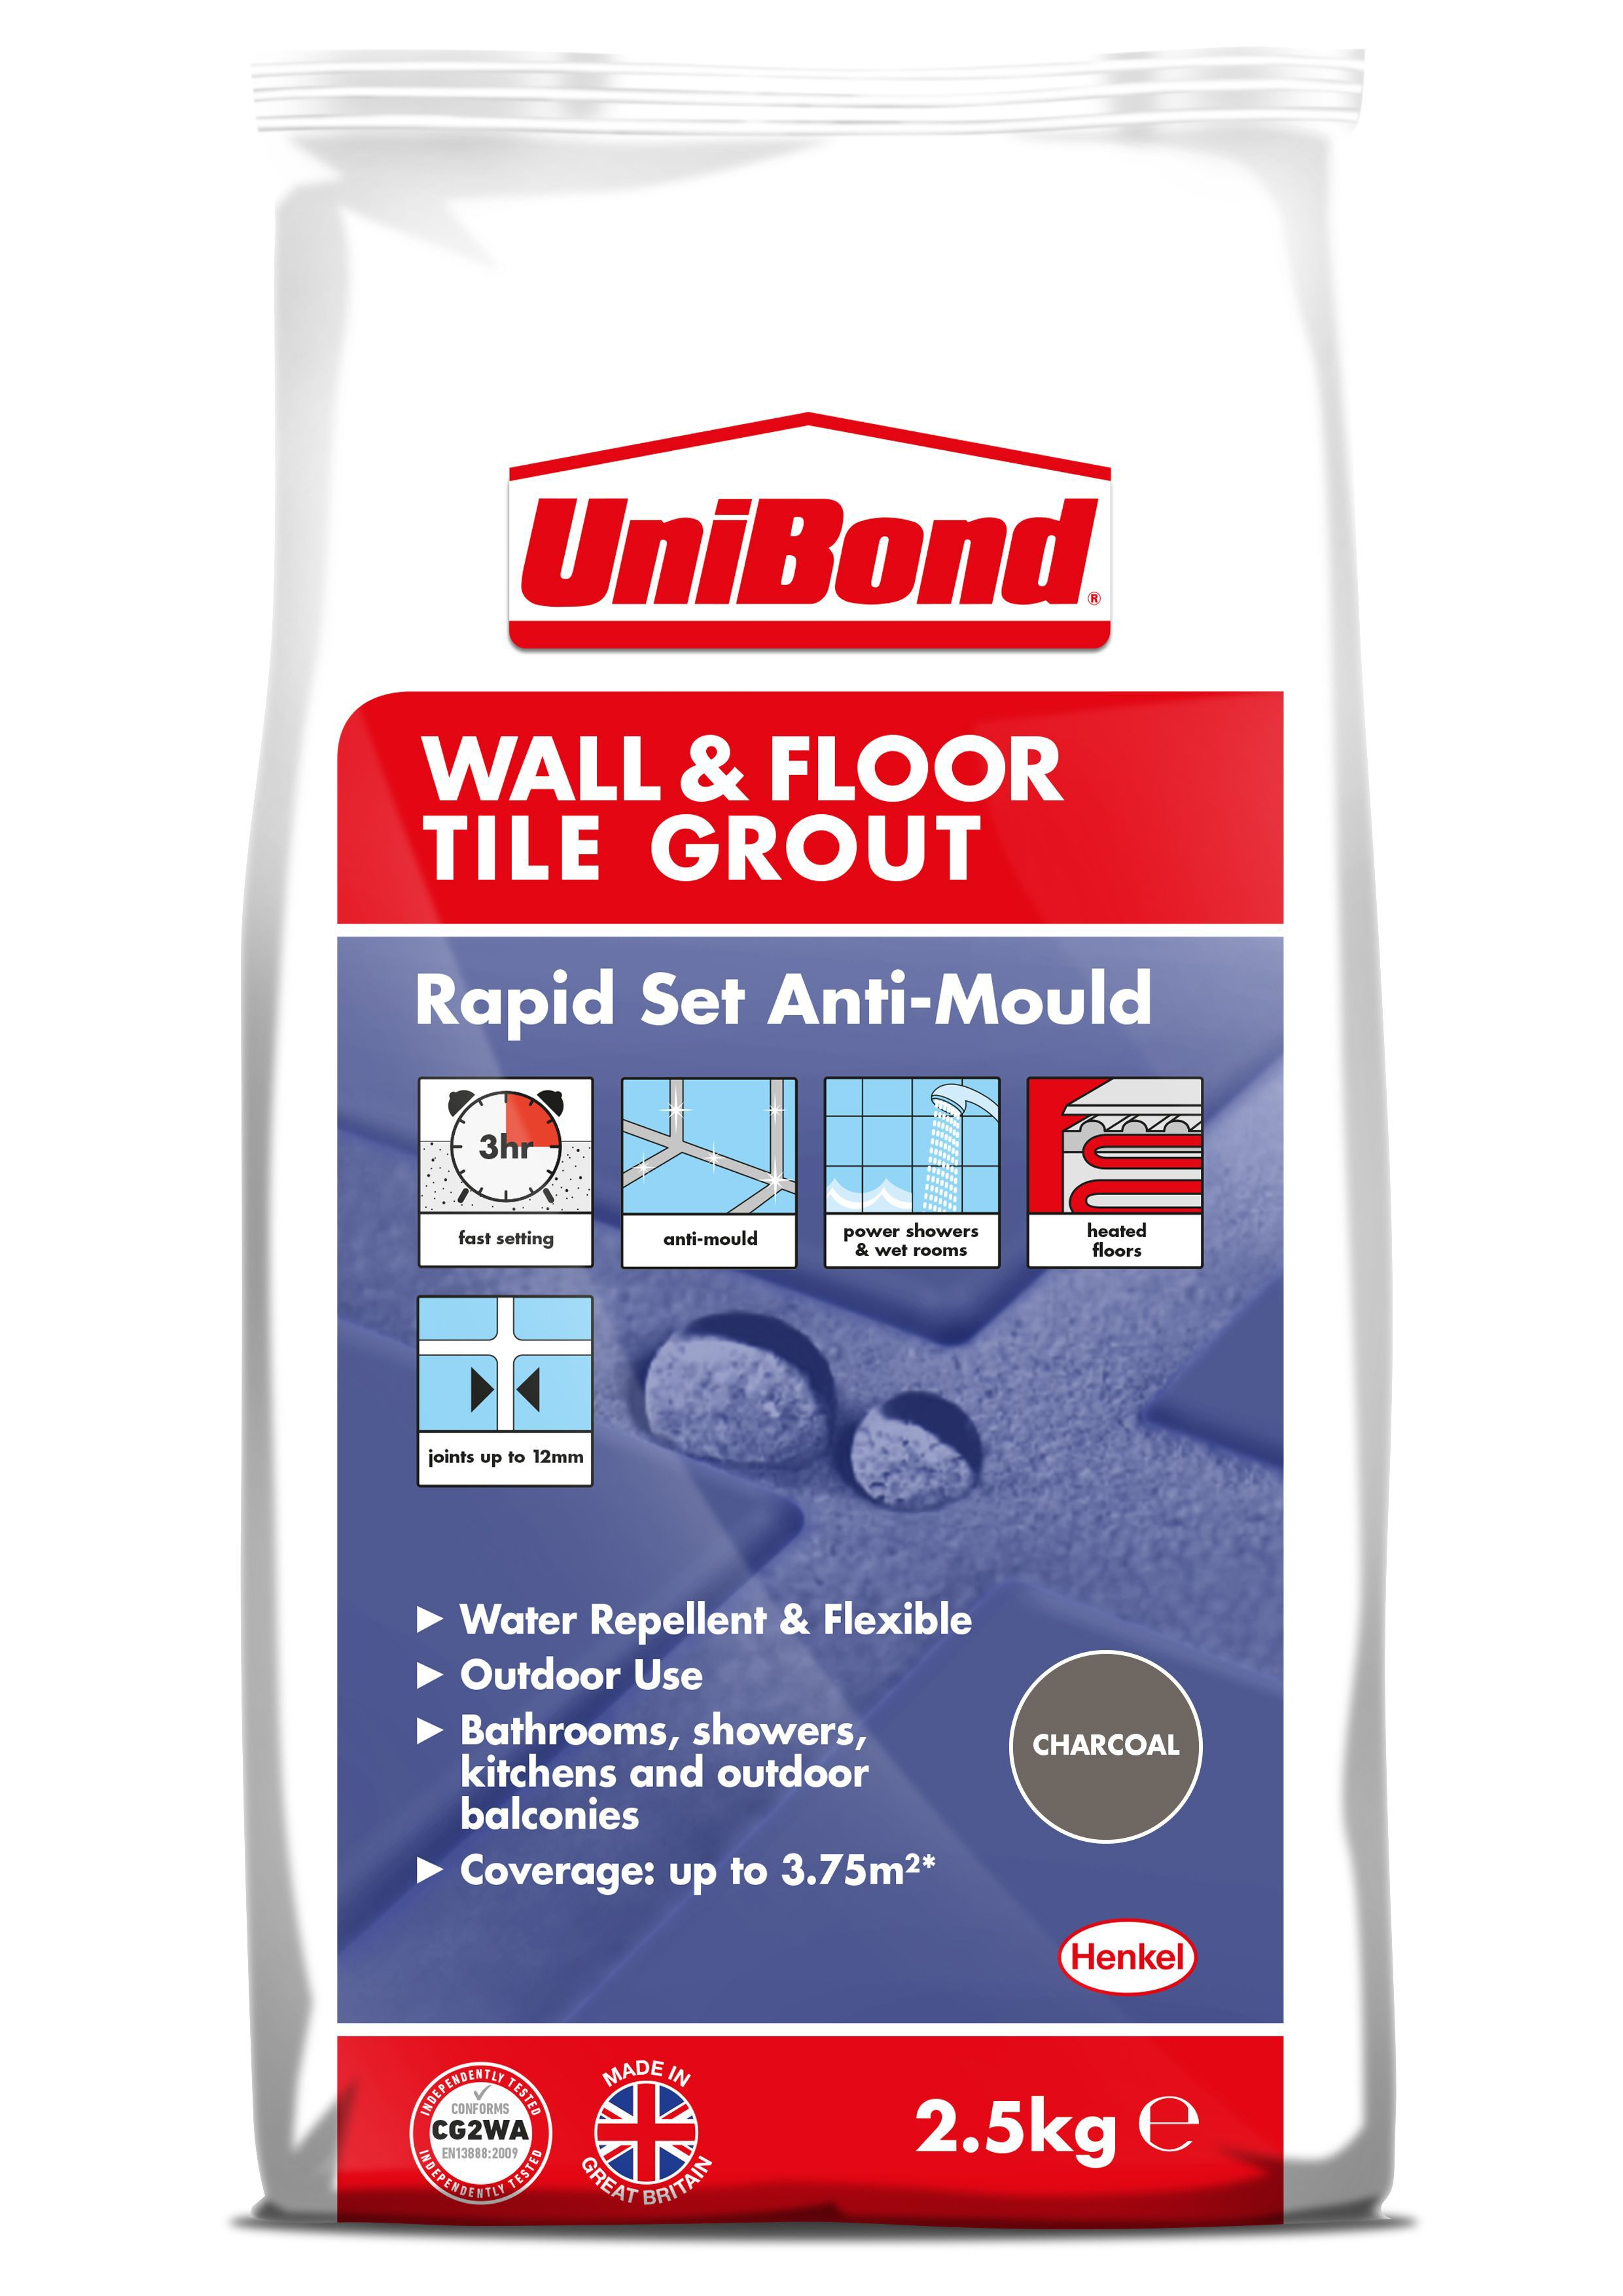 Unibond Rapid Set Flexible Black Wall Amp Floor Tile Grout